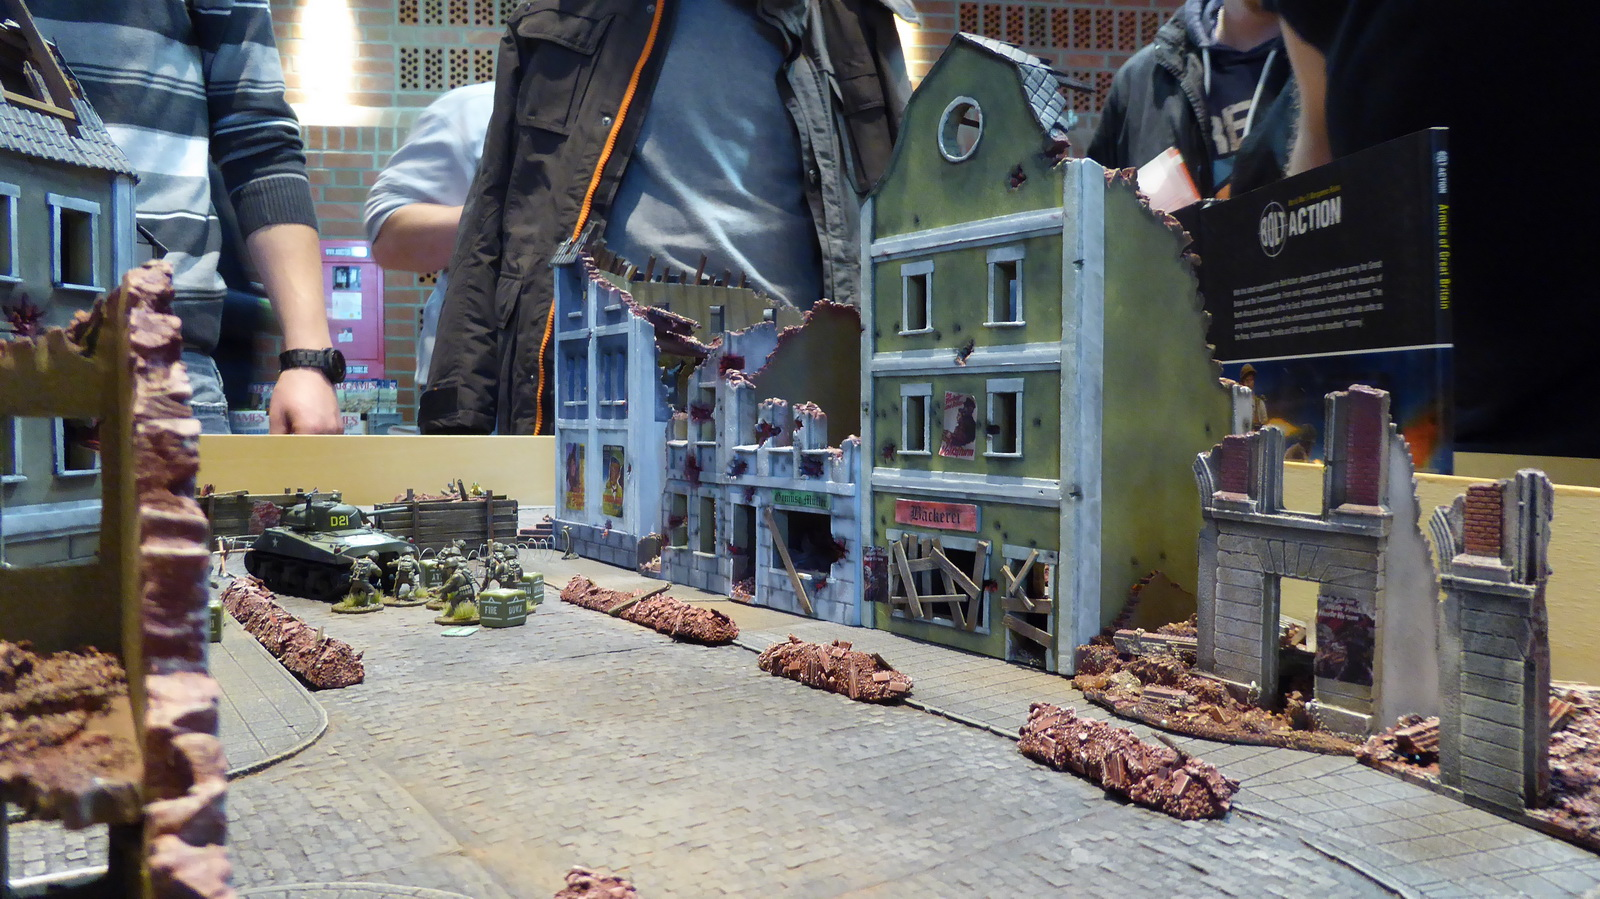 2016_boltaction_aachen_10